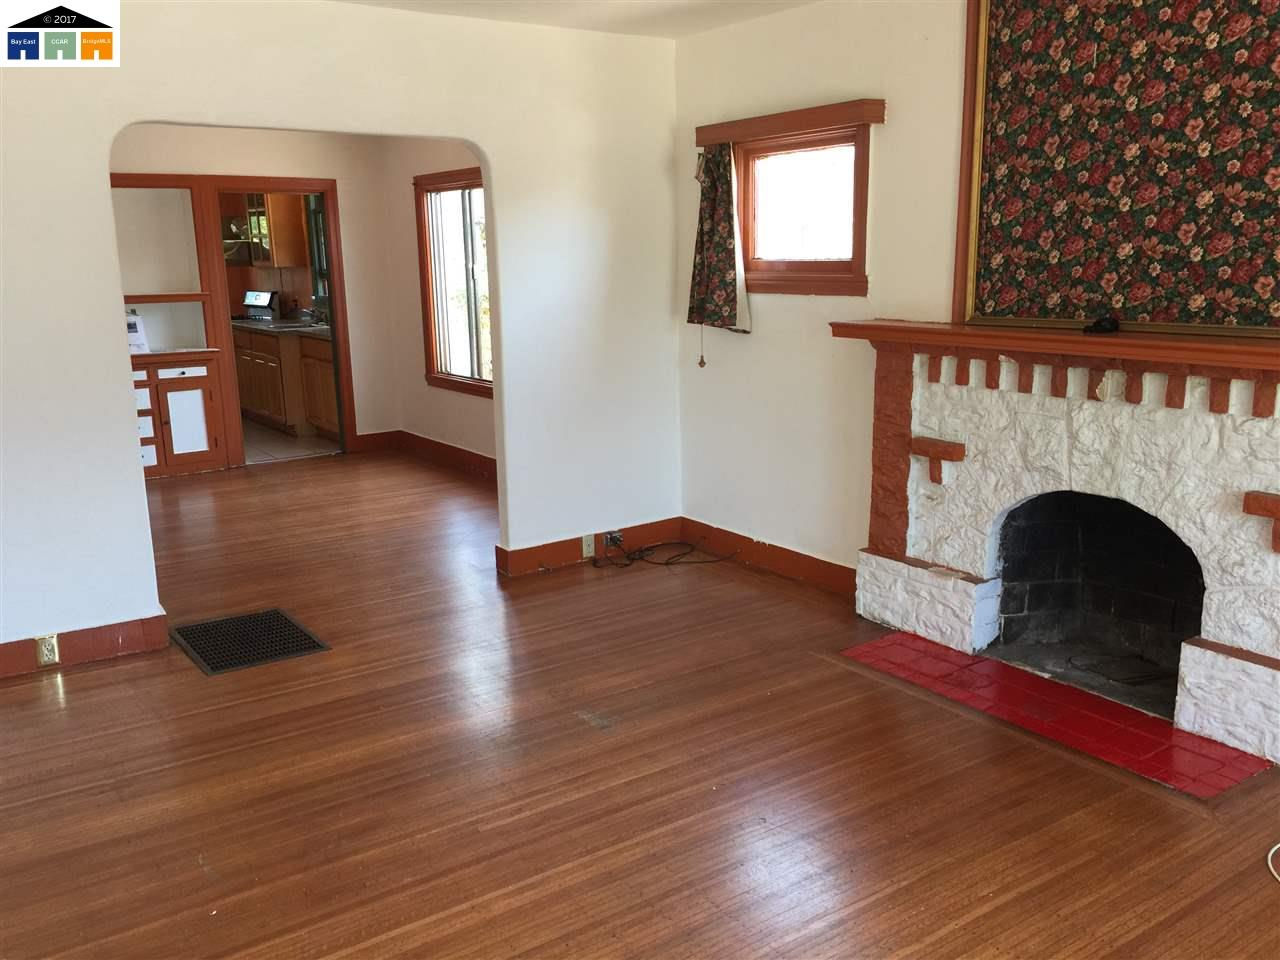 Additional photo for property listing at 2736 Bartlett Street 2736 Bartlett Street Oakland, カリフォルニア 94602 アメリカ合衆国